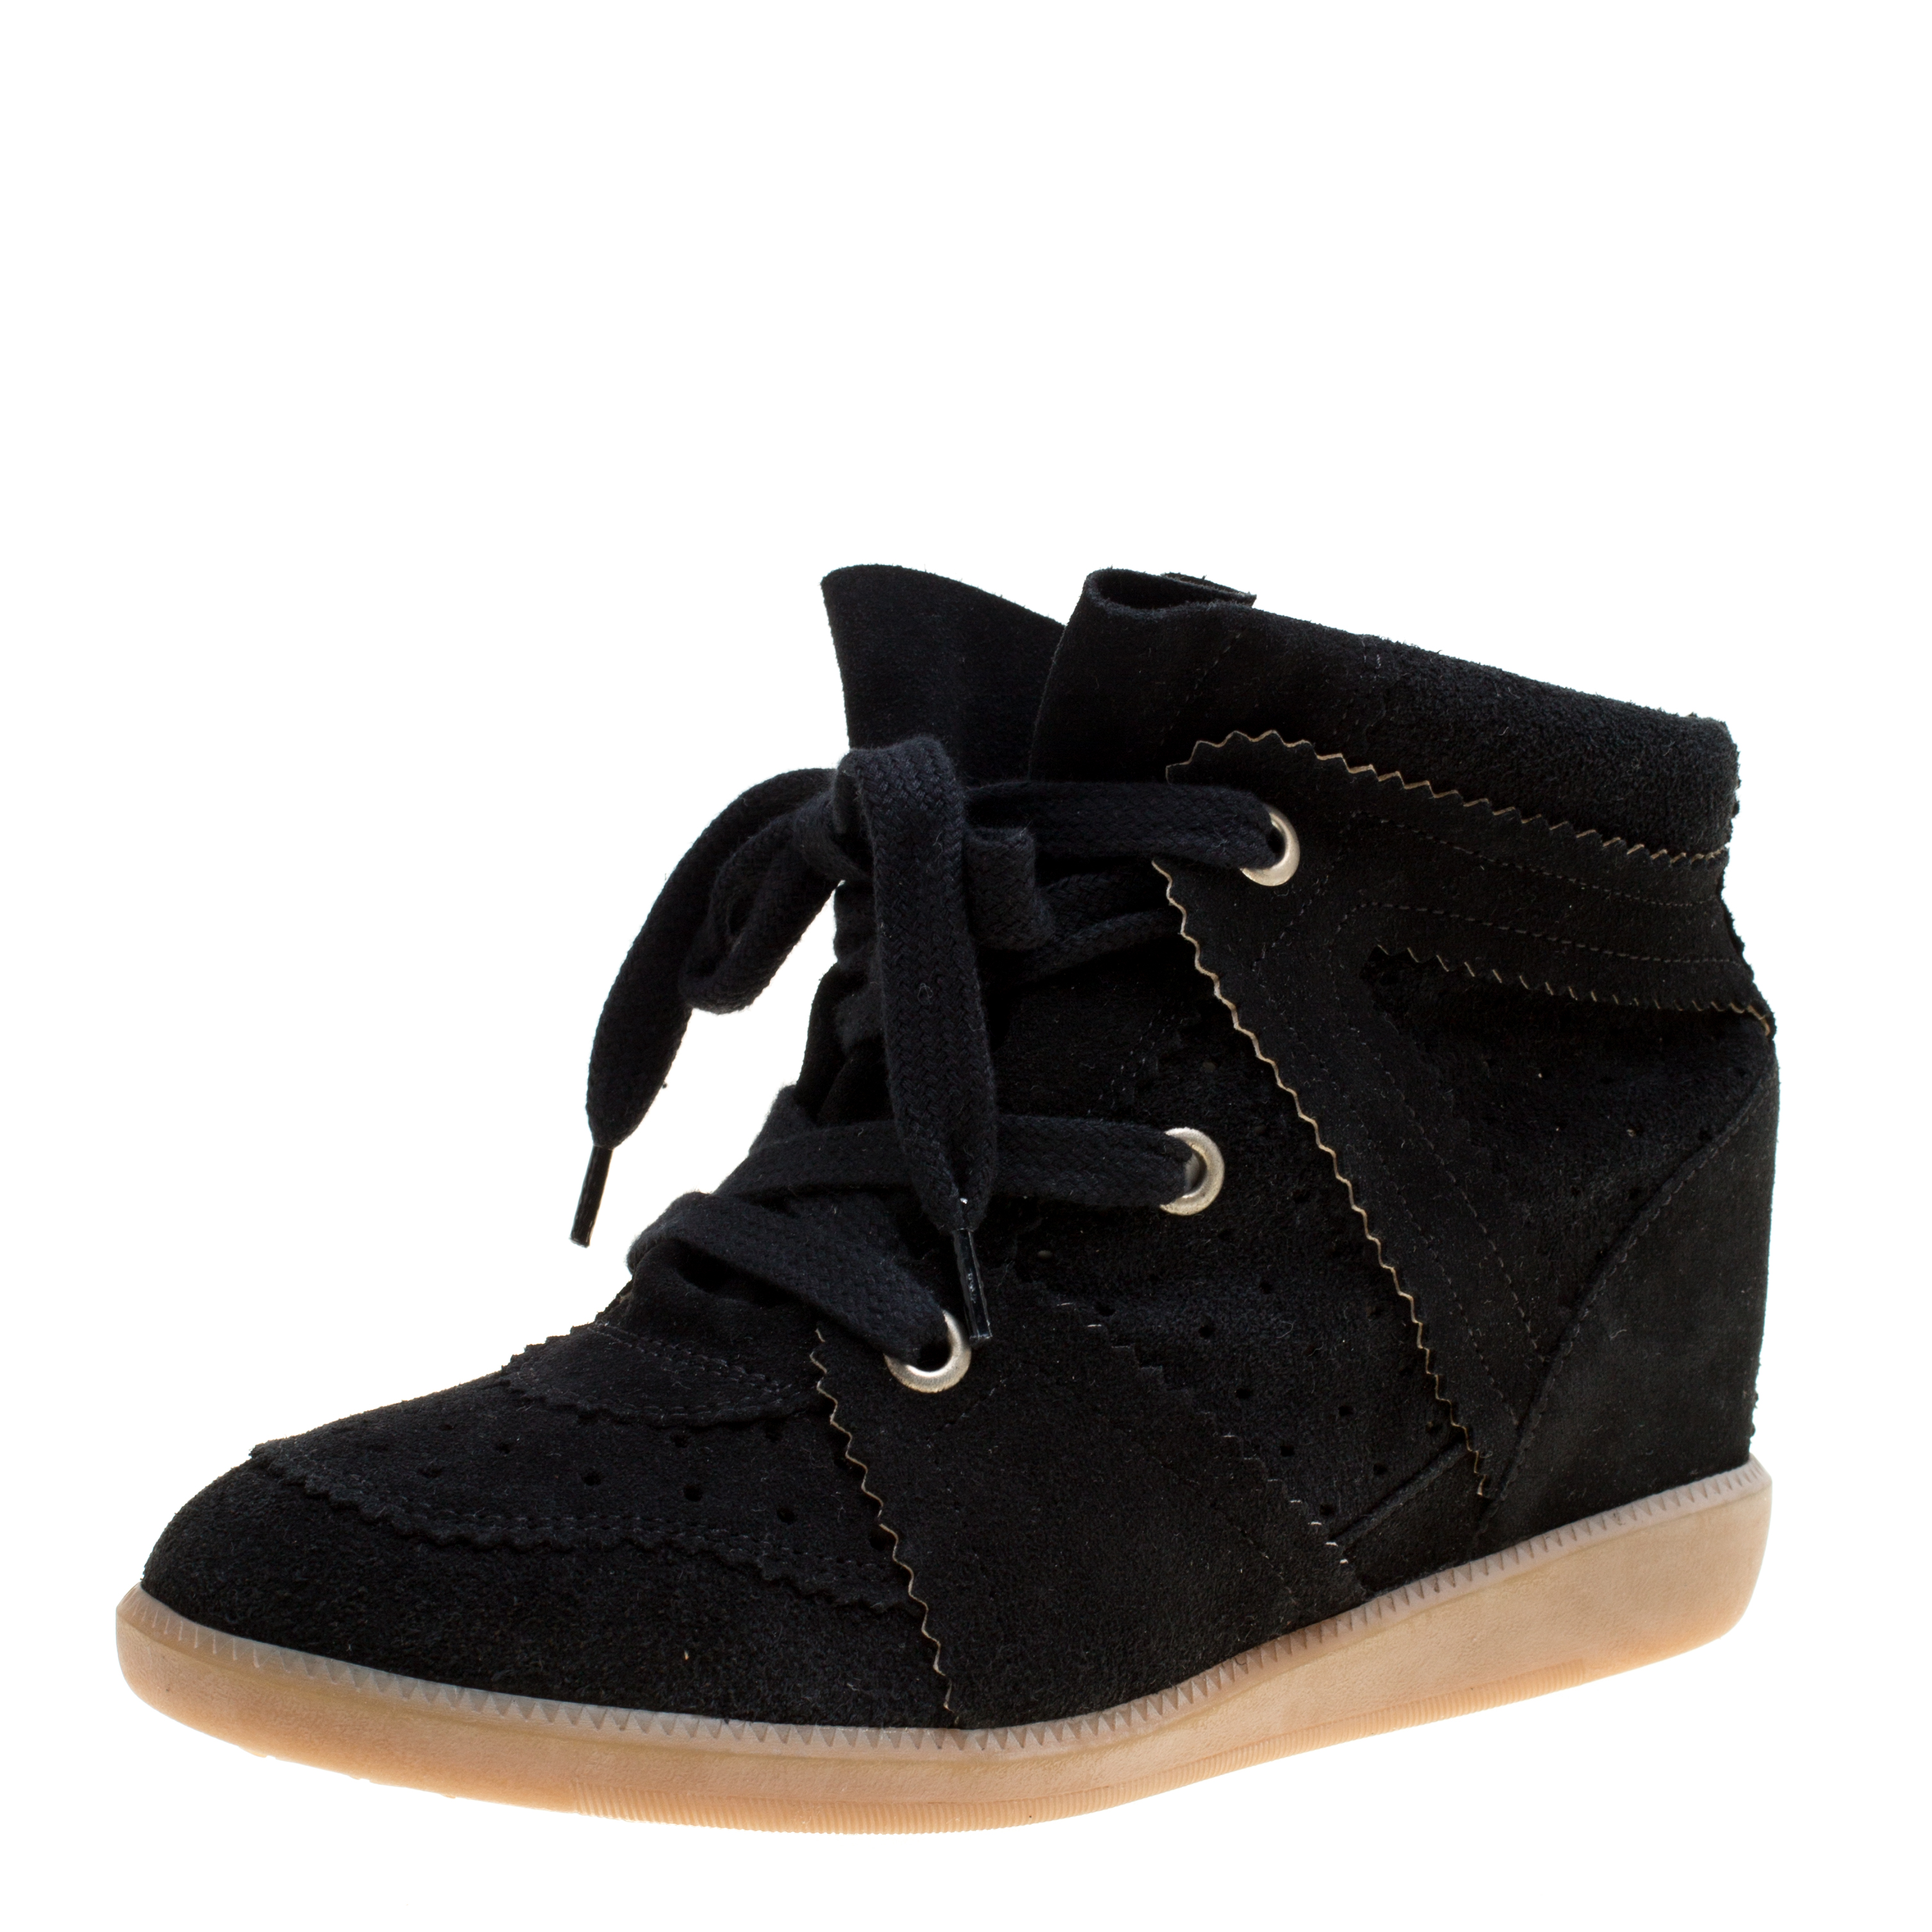 678bb34f2ed1 ... Isabel Marant Black Suede Bobby Lace Up Wedge Sneakers Size 40.  nextprev. prevnext